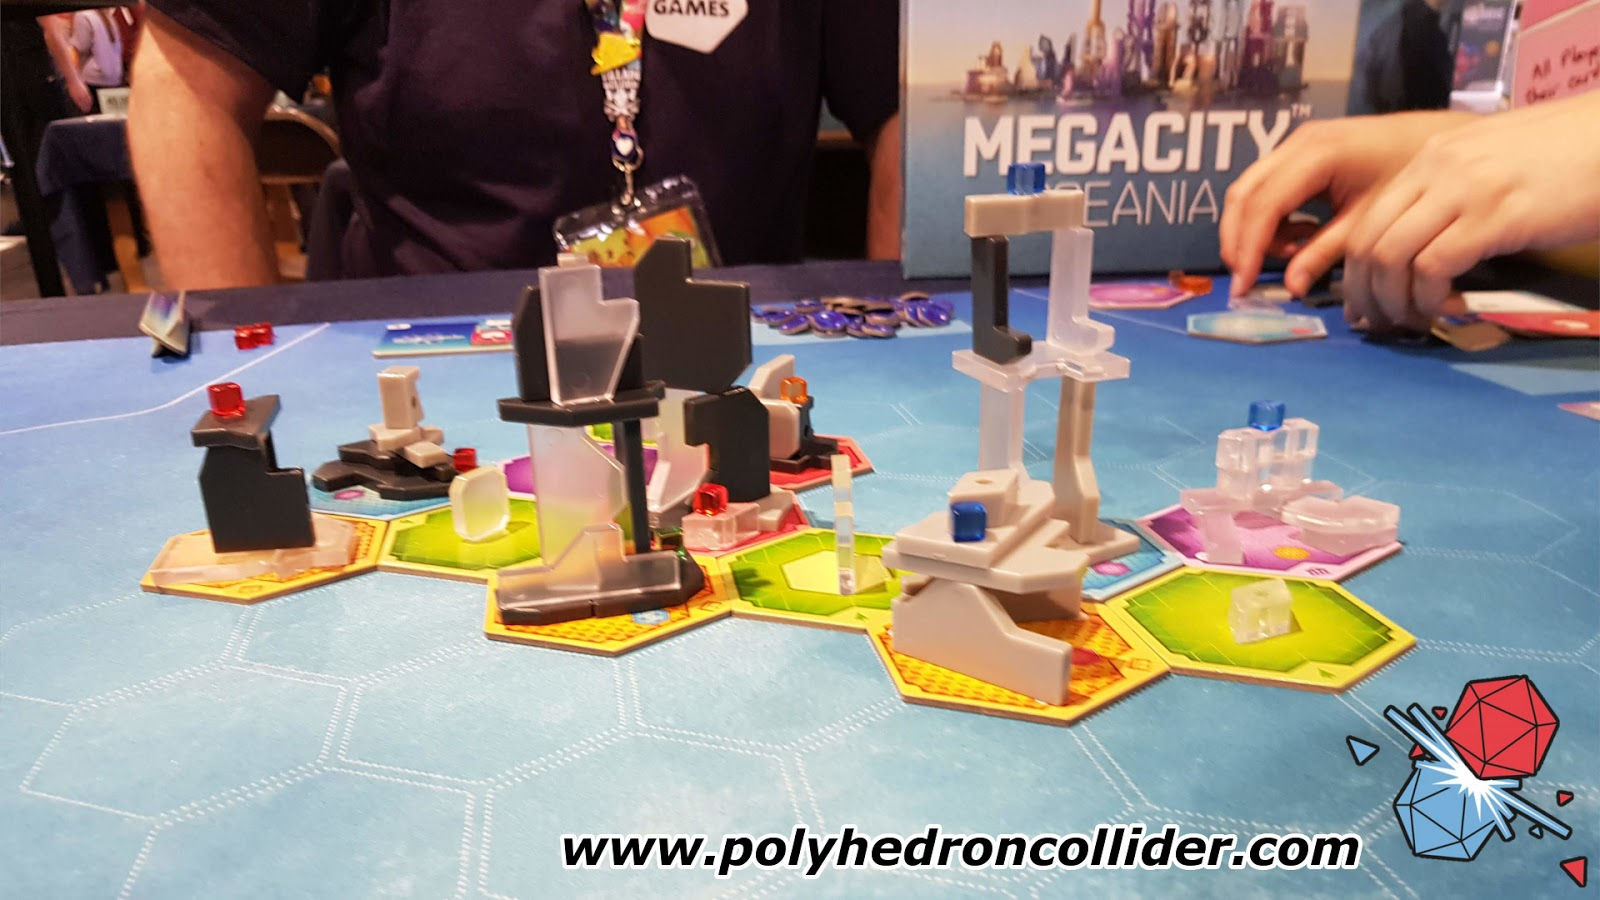 UK Games Expo Megacity Oceania